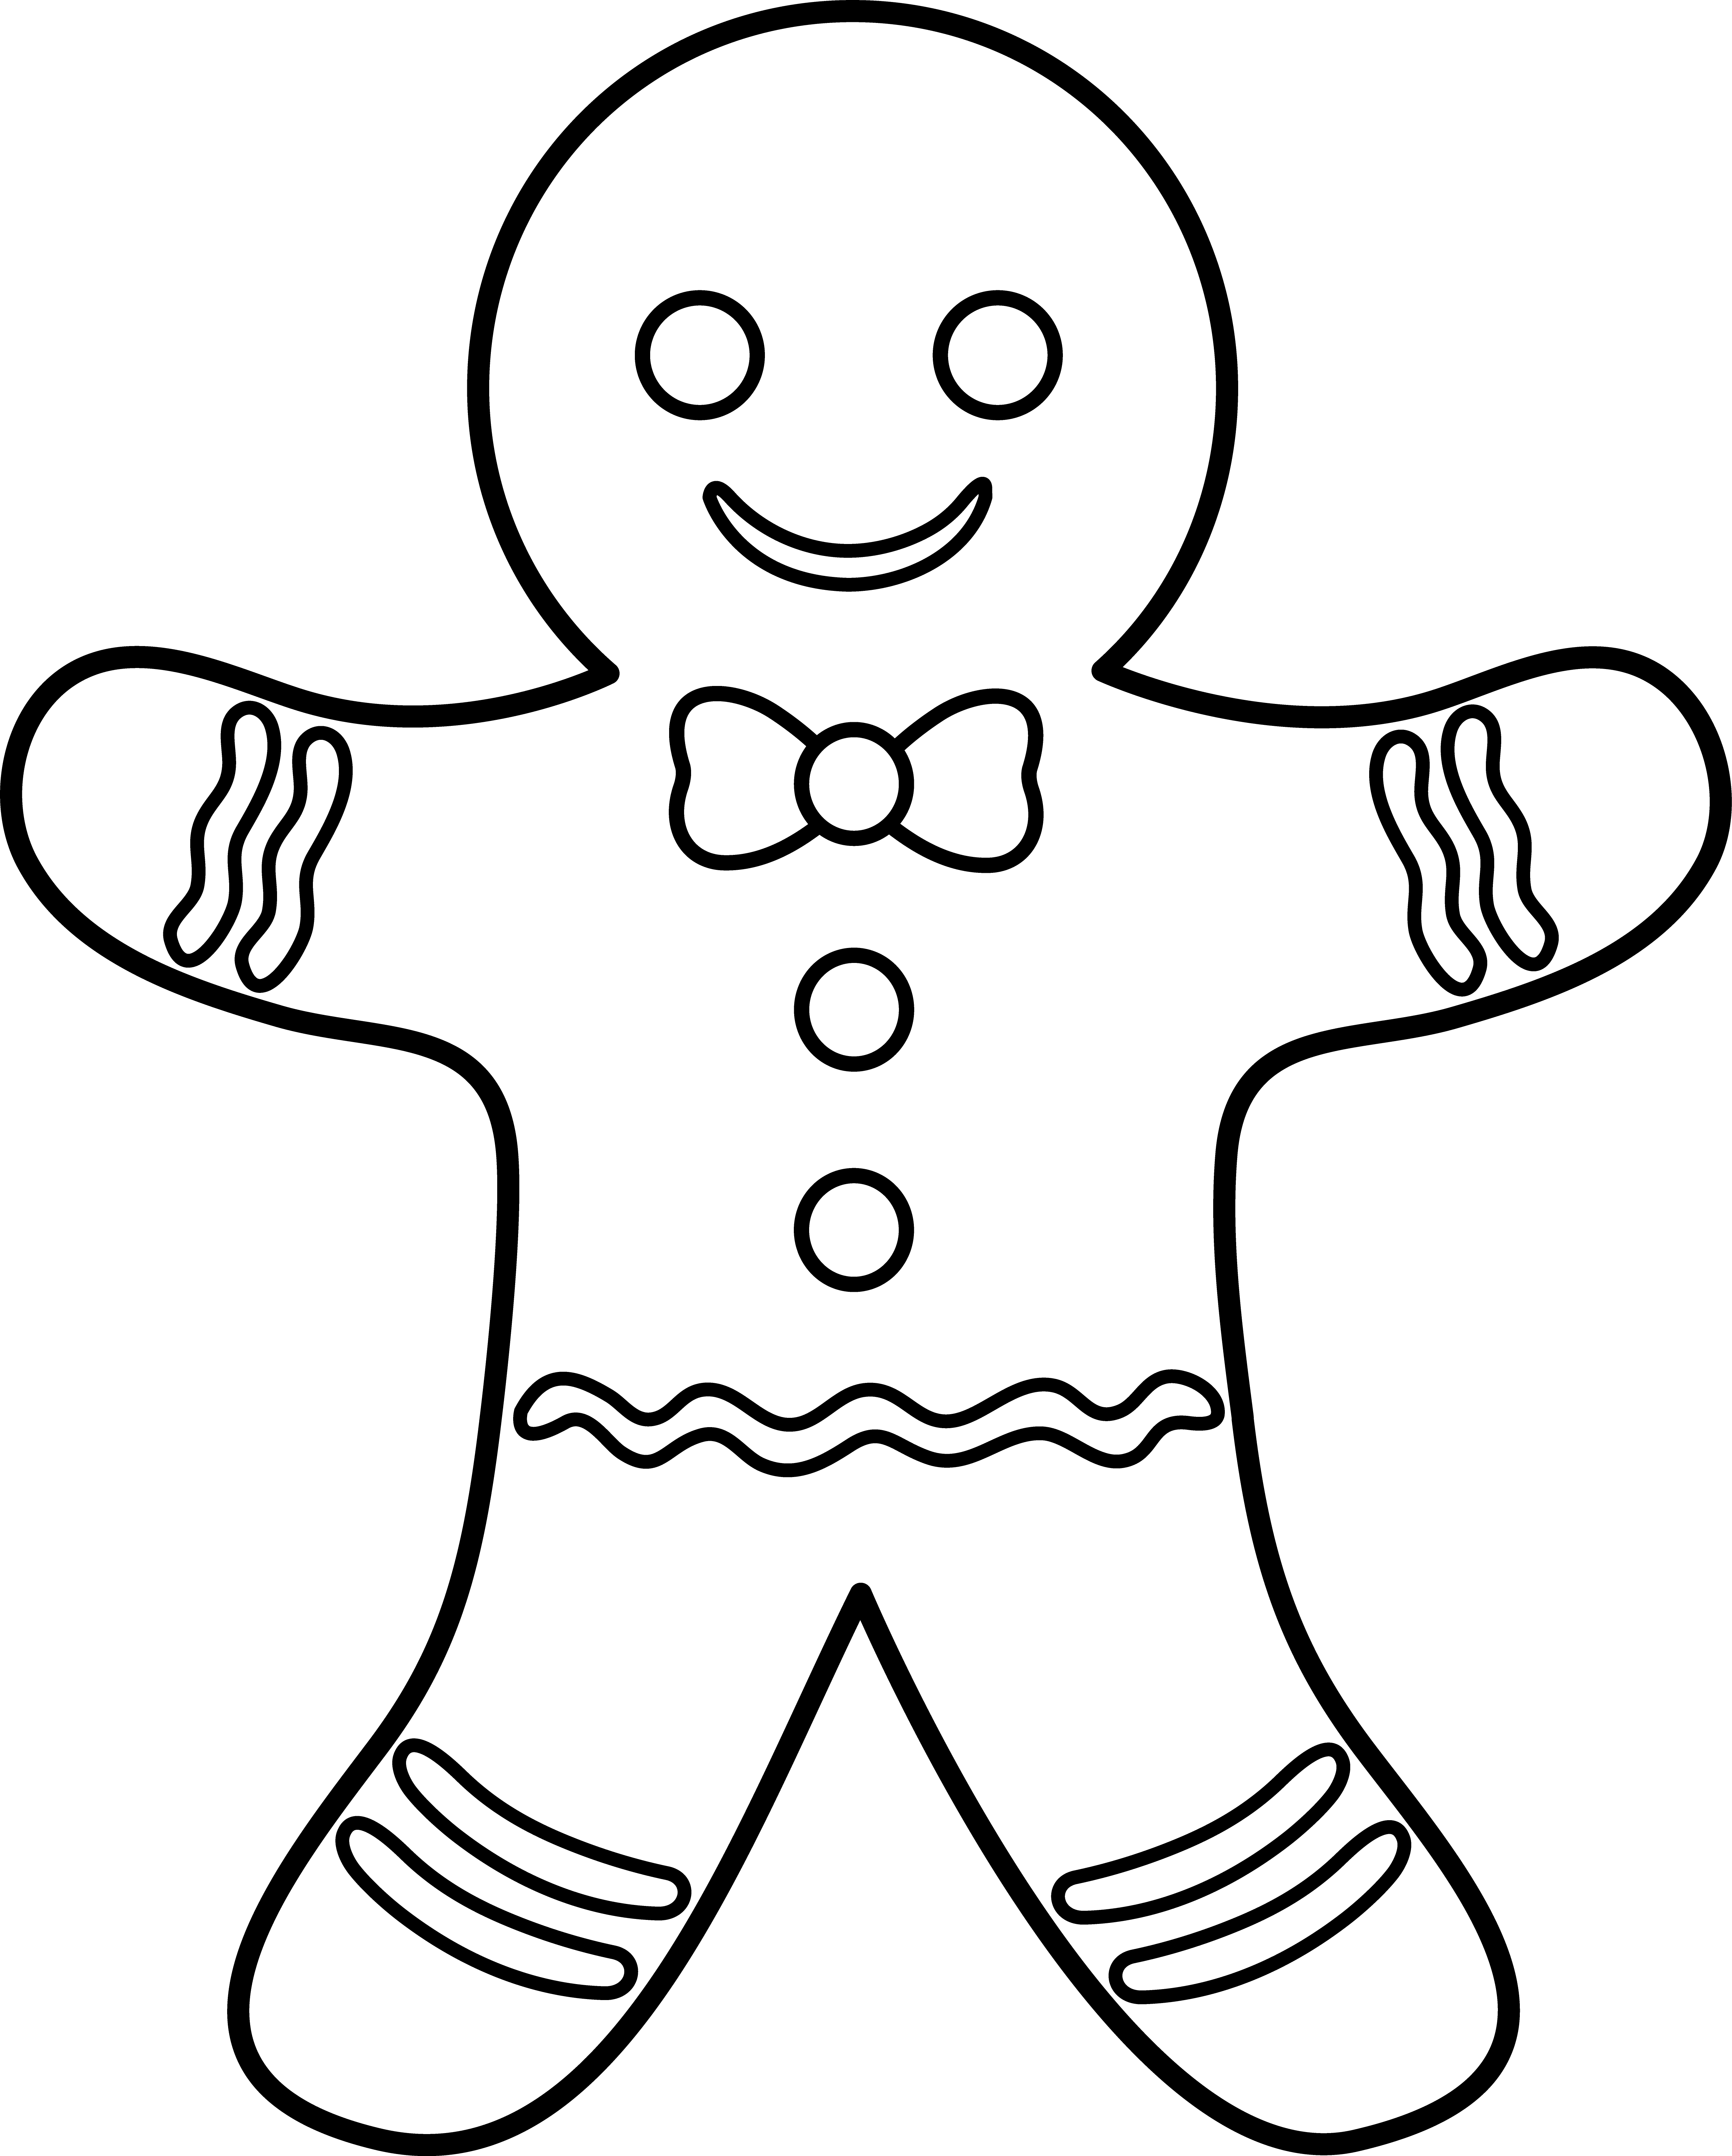 Clipart black and white gingerbread house svg royalty free 18inspirational Gingerbread Man Coloring Sheet - Clip arts ... svg royalty free